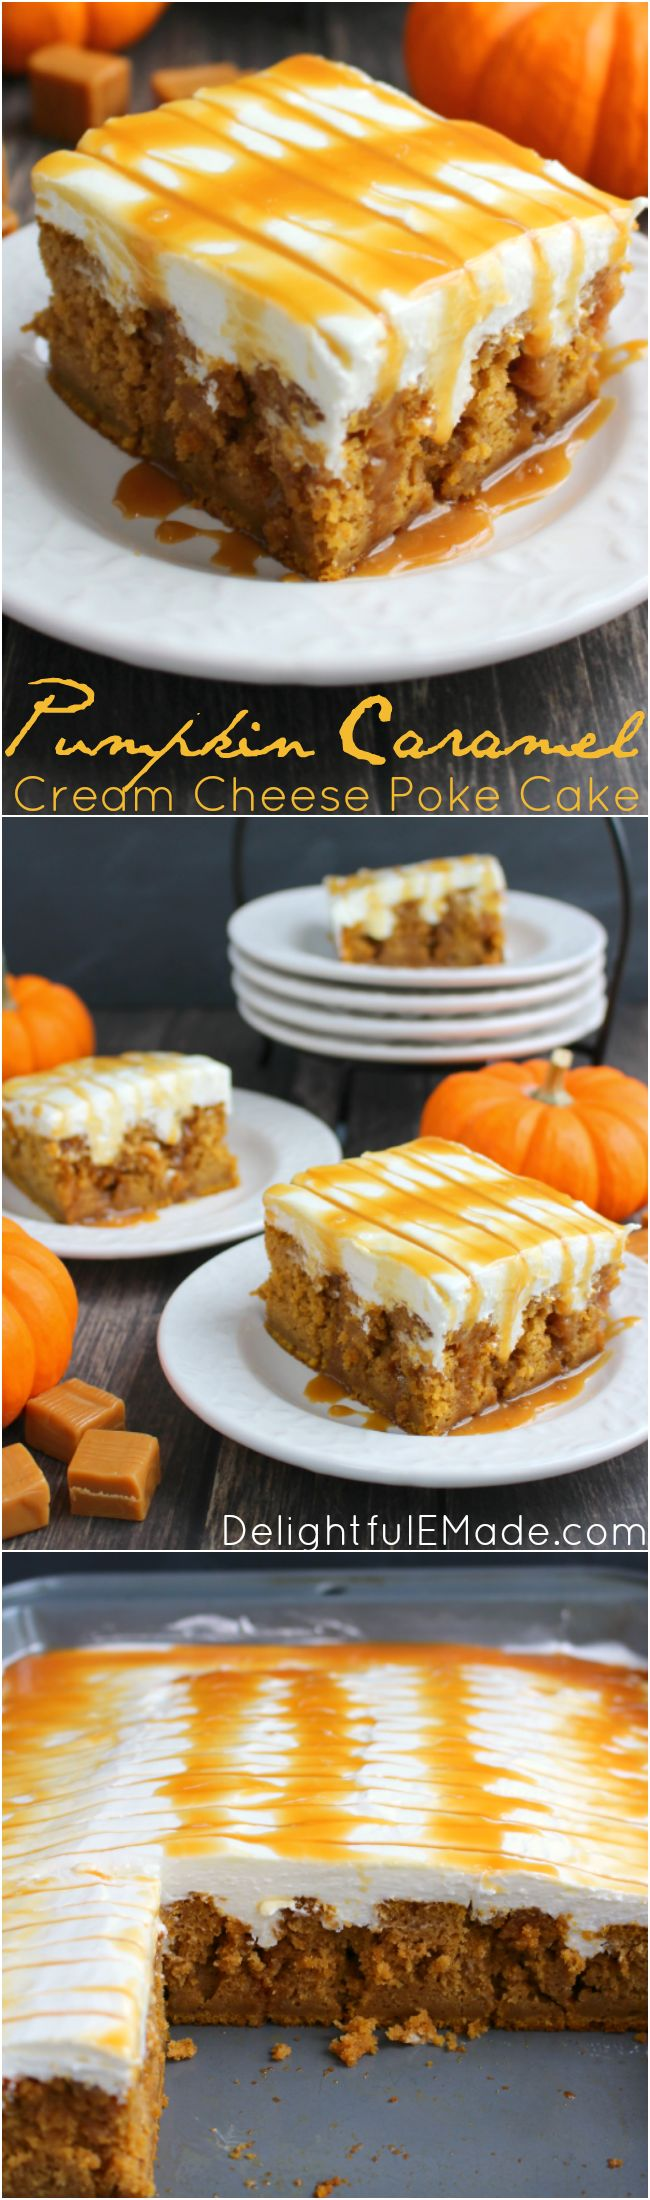 The ultimate fall dessert! A pumpkin spice cake is drizzled with caramel sauce, frosted with a decadent cream cheese frosting and topped with even more caramel sauce! You'll love every single morsel of this uber moist, delicious cake!: